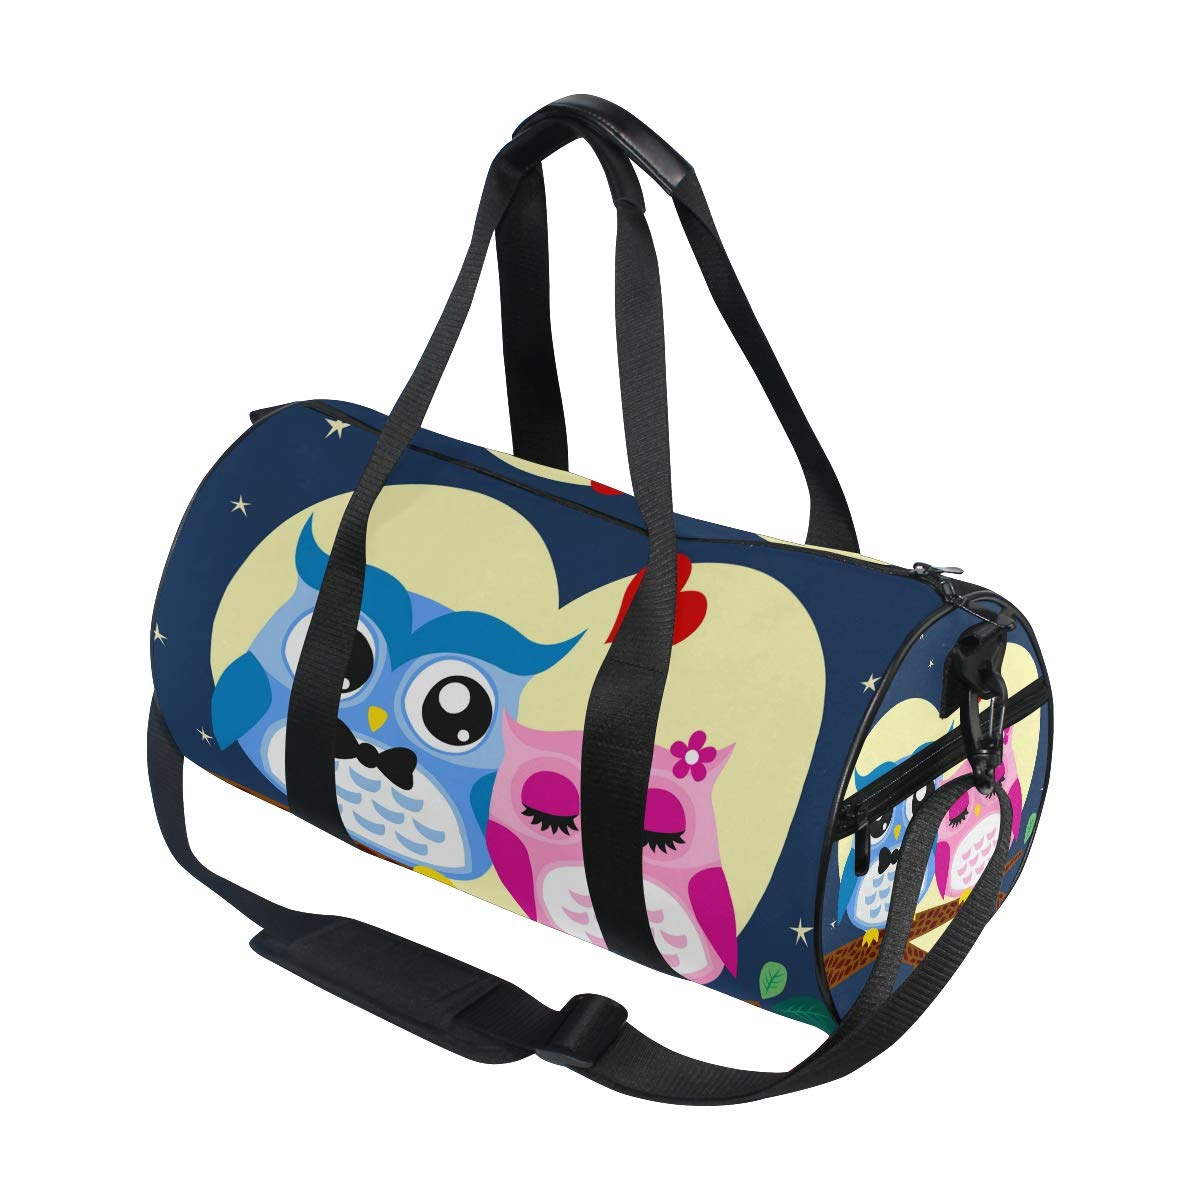 WIHVE Gym Duffel Bag Cartoon Owls Couple In Love At Tree Sports Lightweight Canvas Travel Luggage Bag